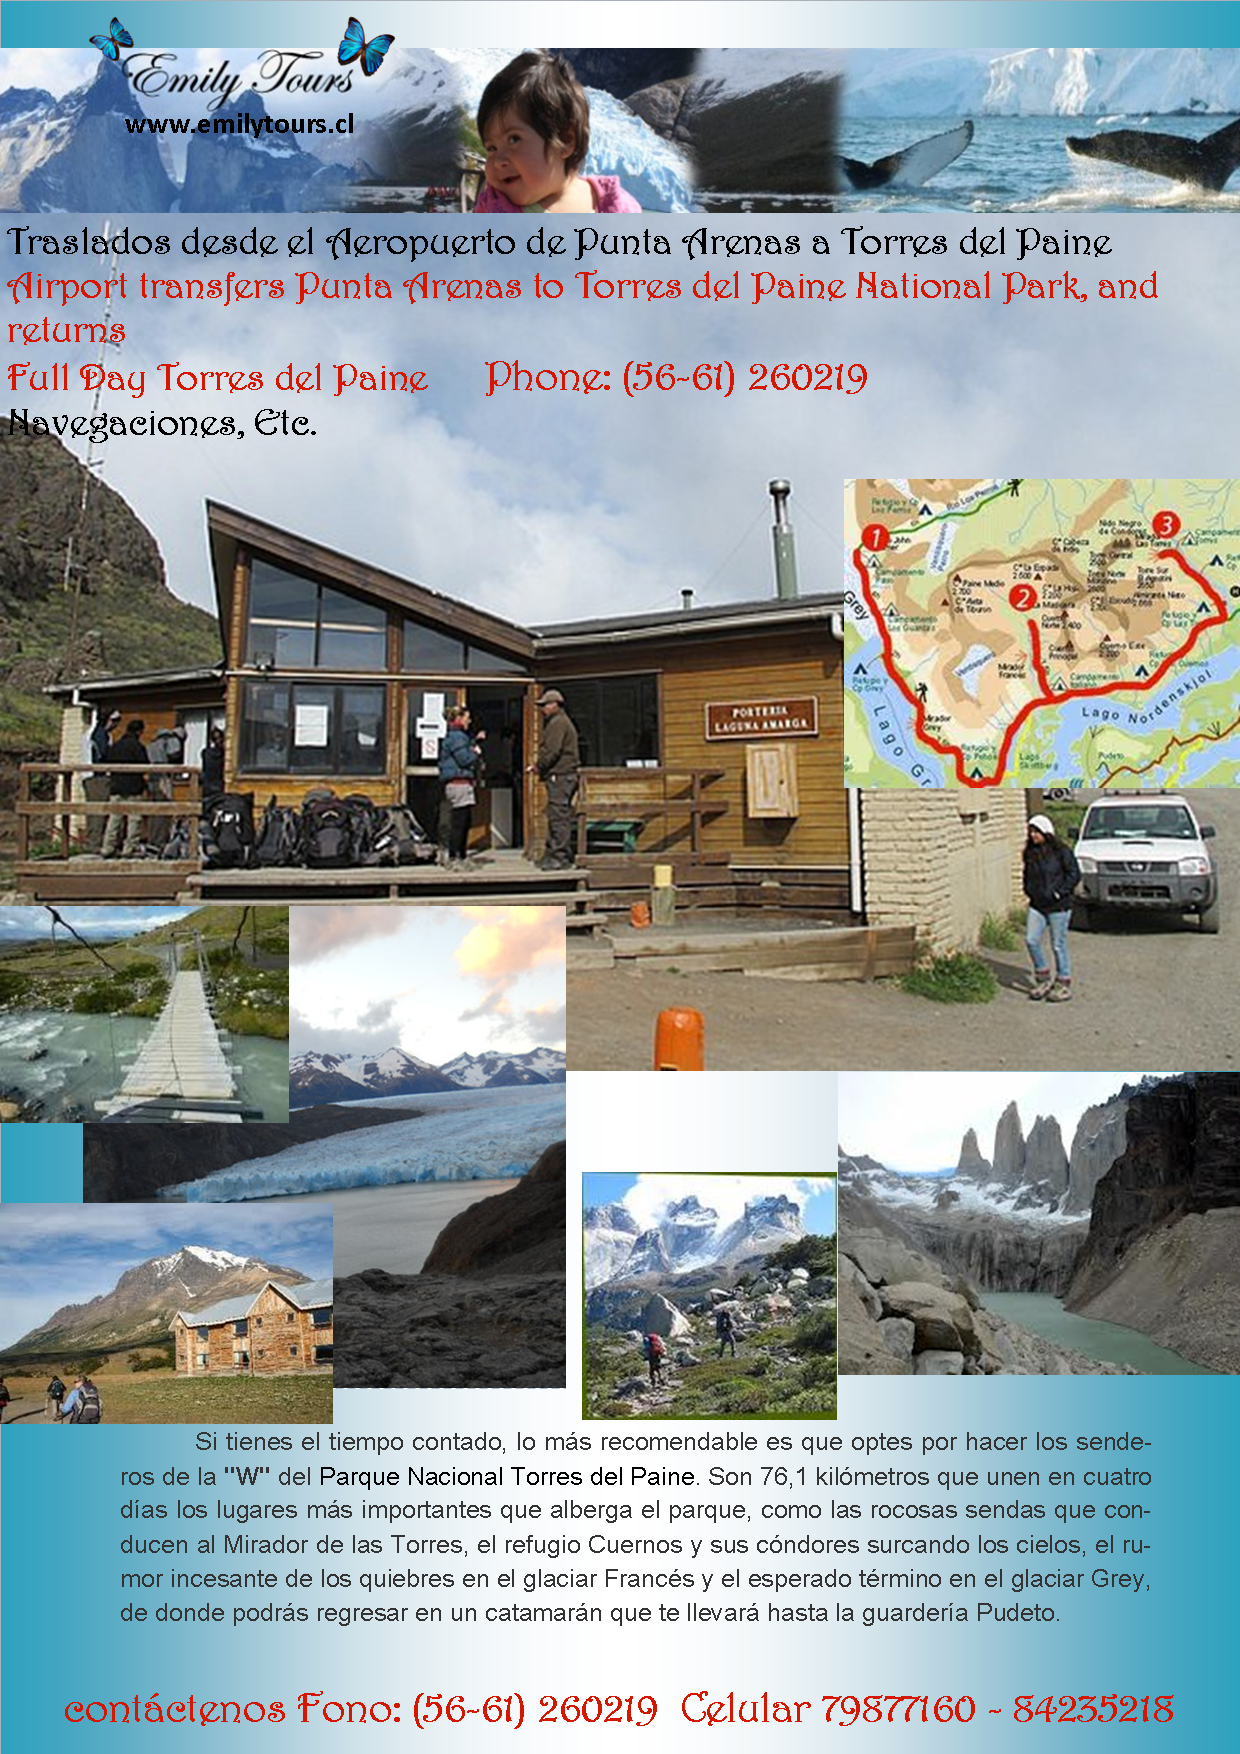 Transfers to torres del paine